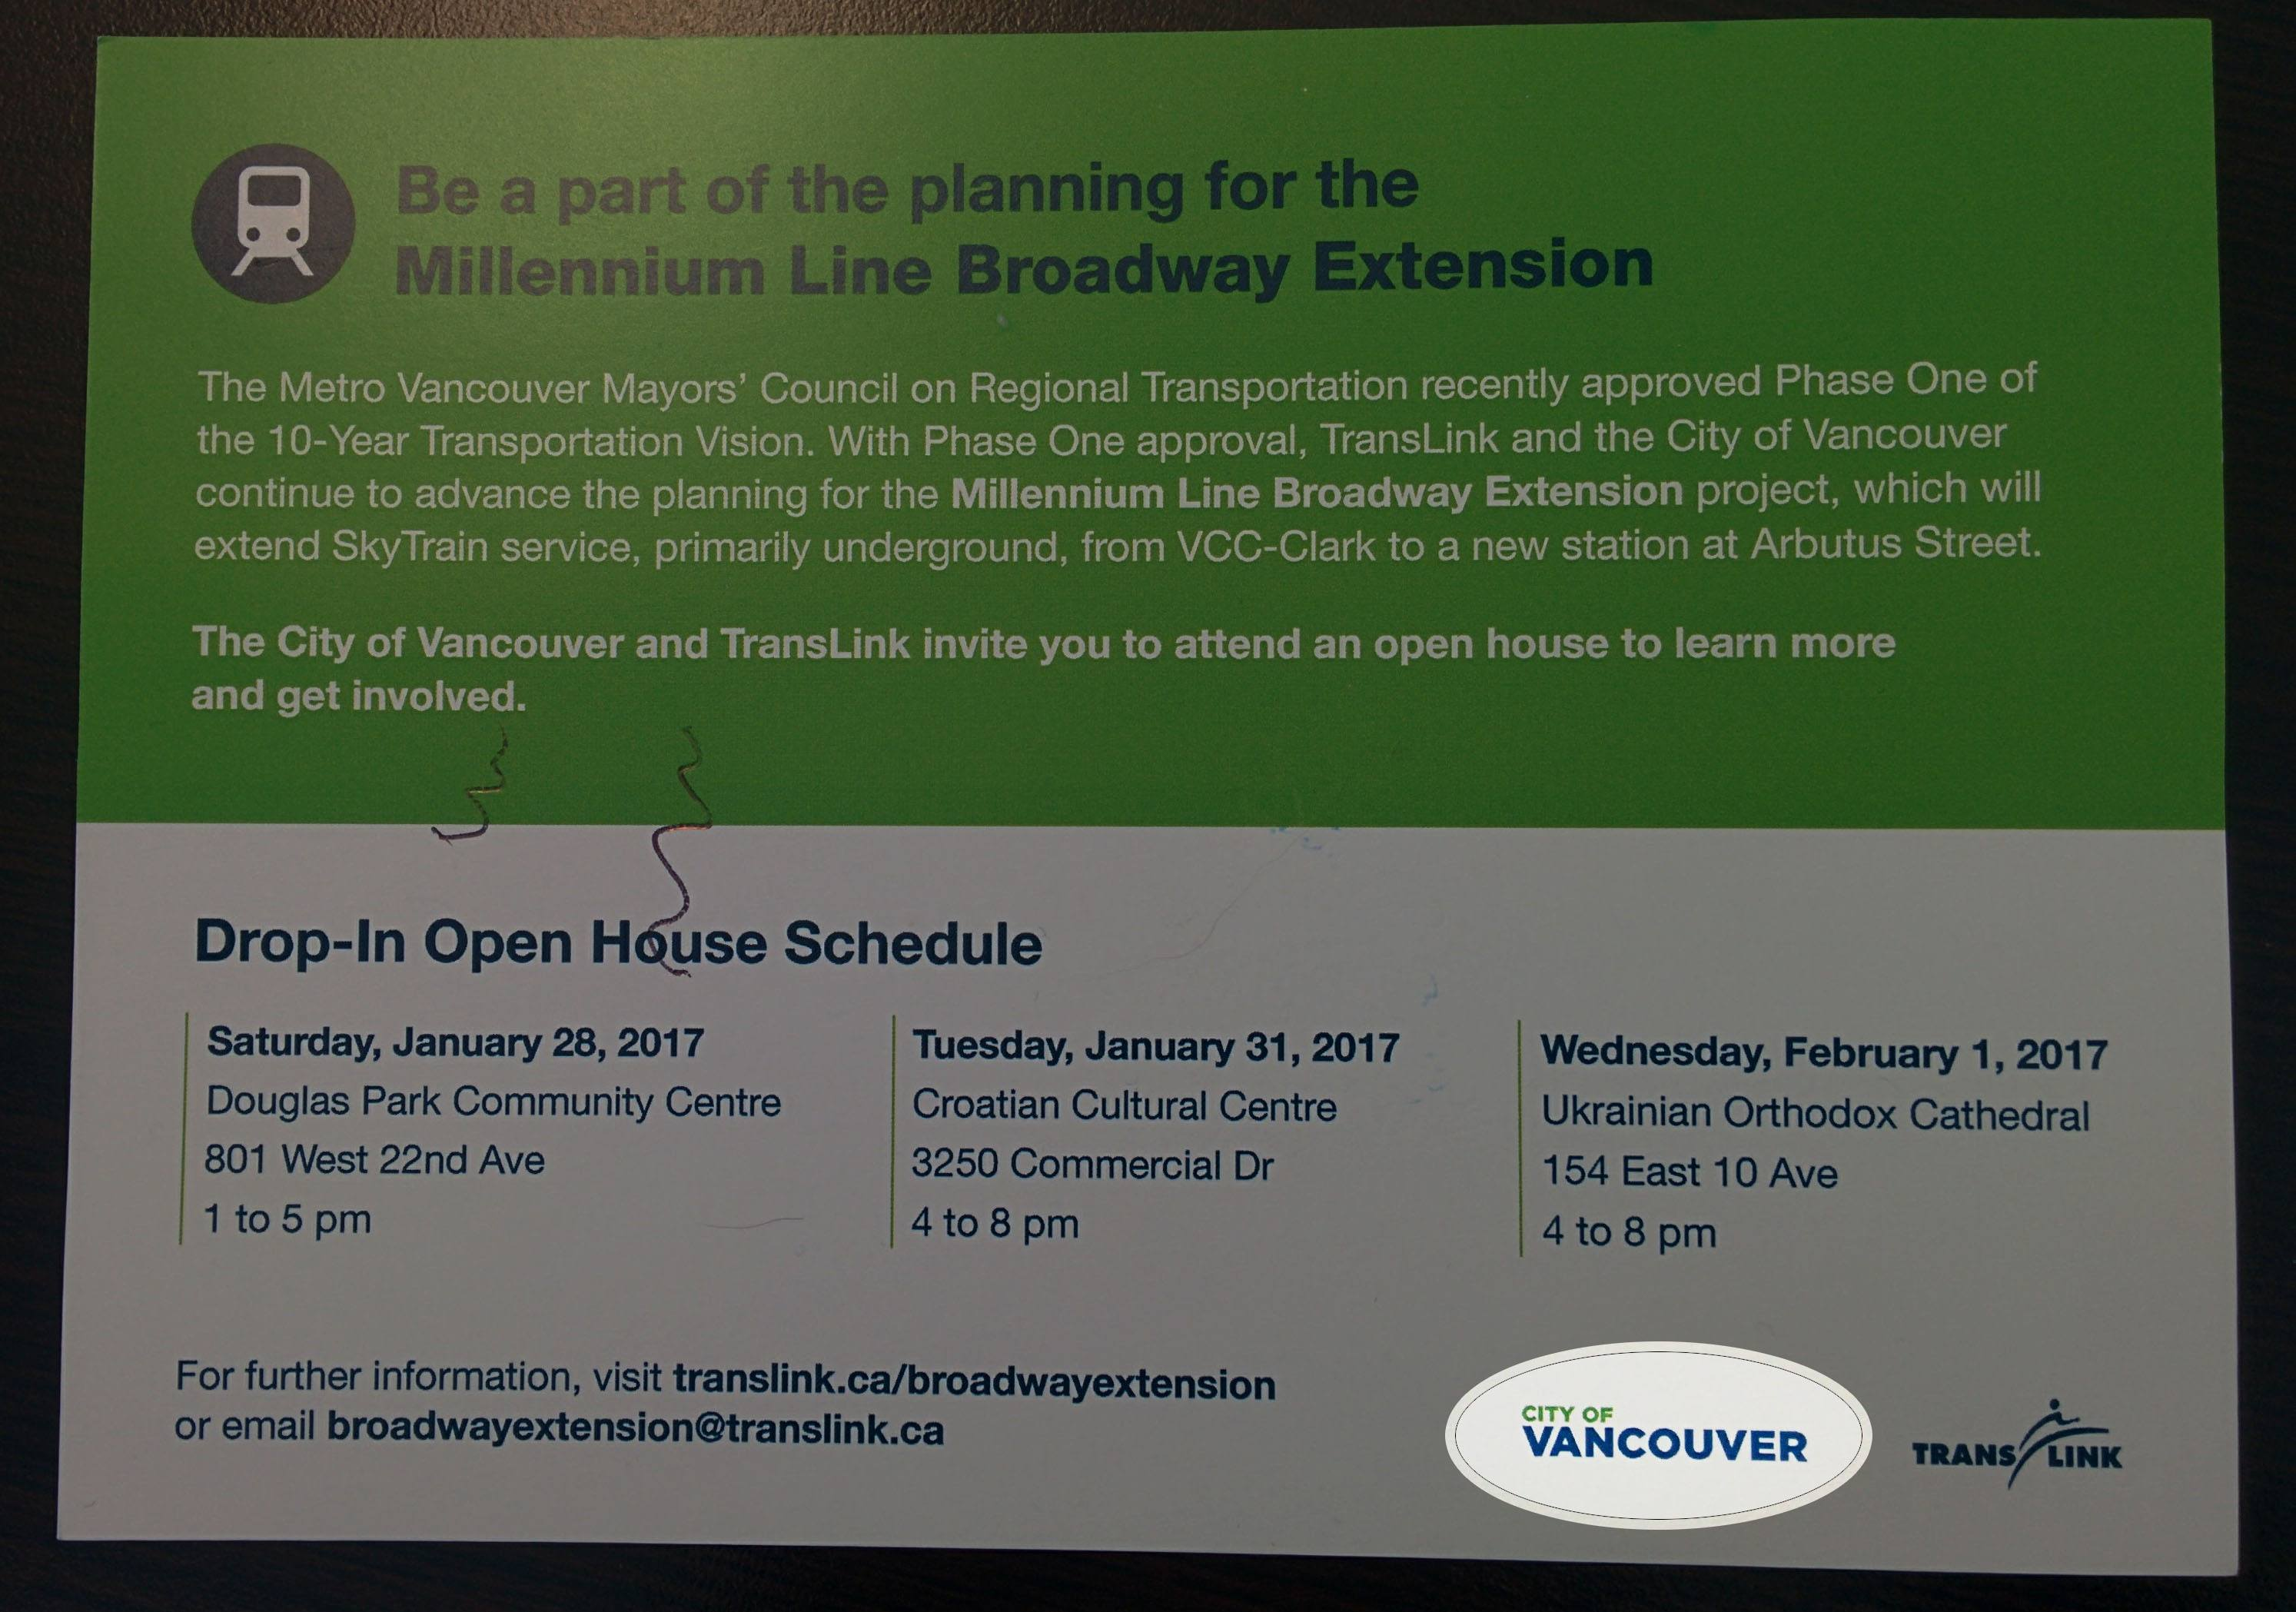 New City of Vancouver wordmark already being used on open house invite (Daily Hive)